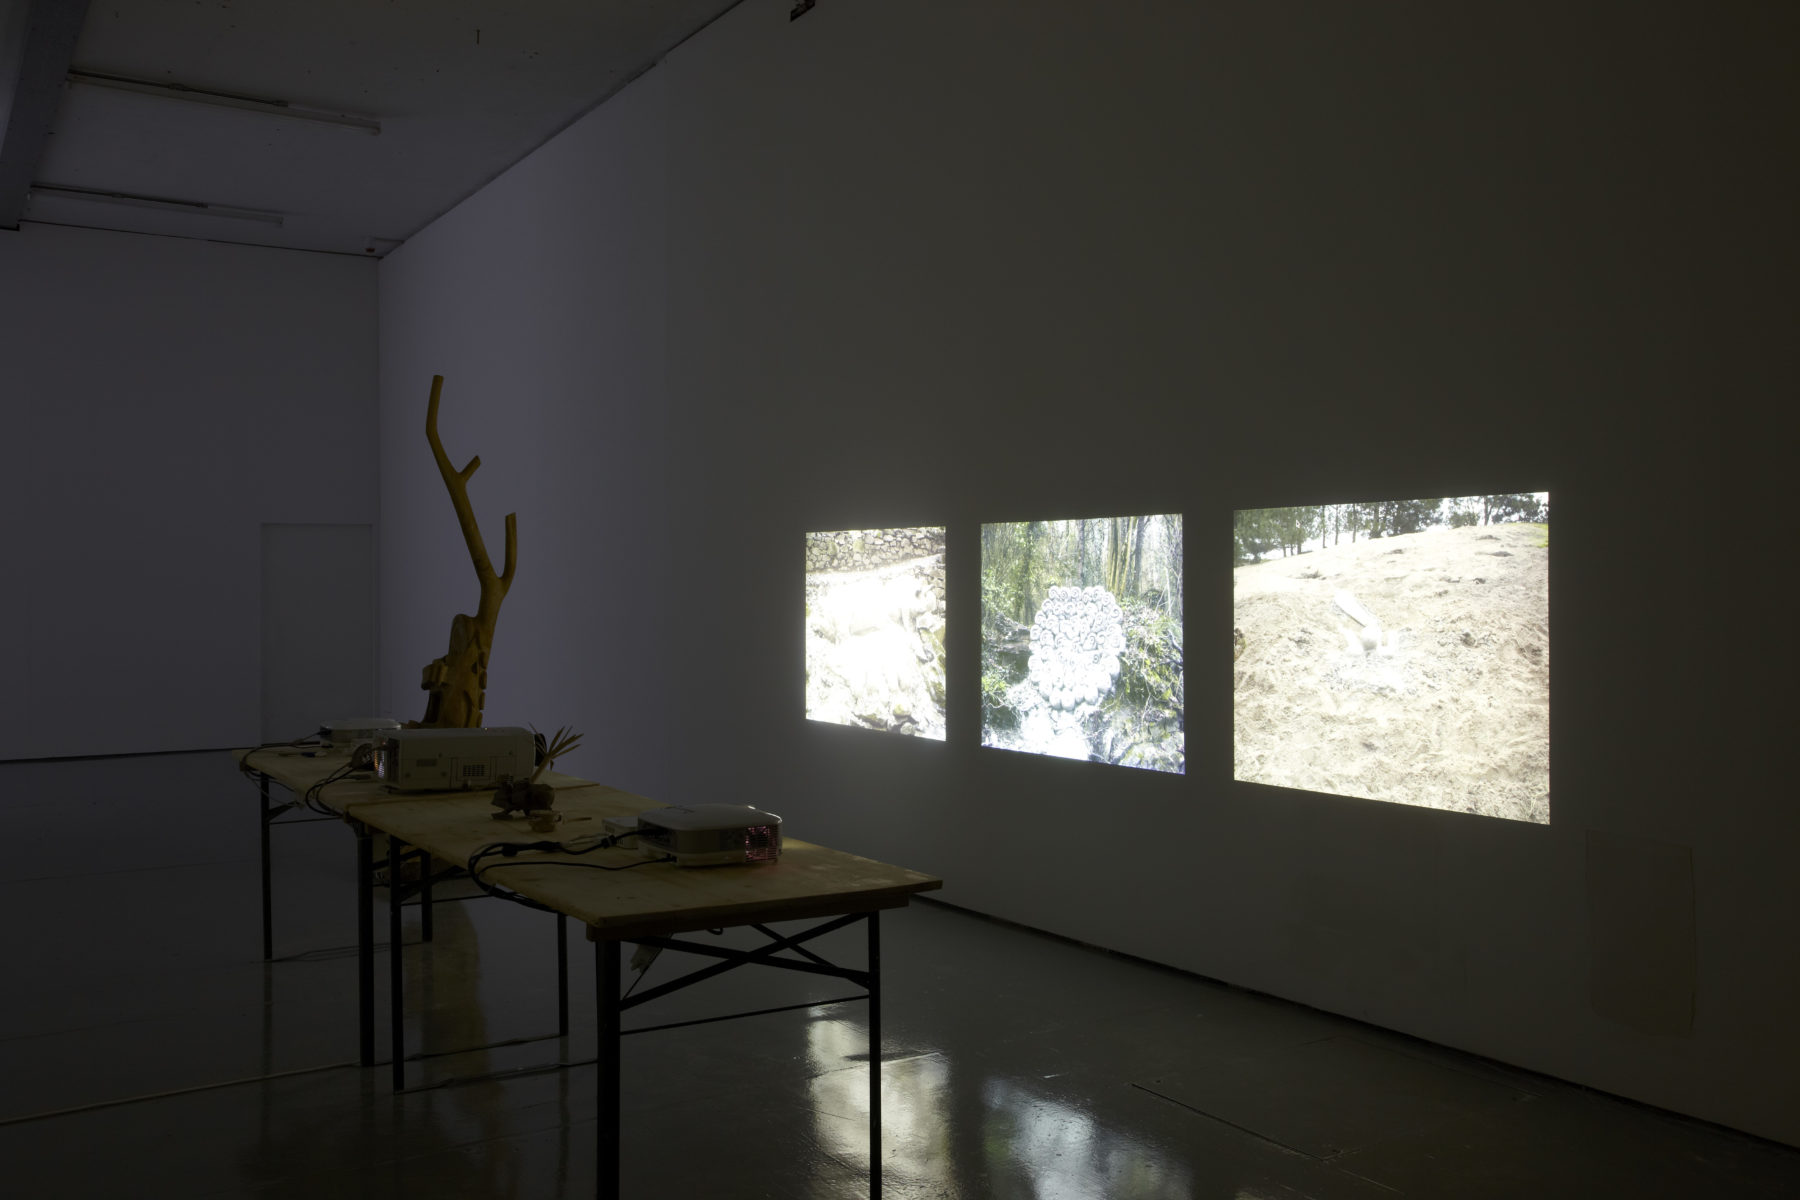 Installation view of Crêpe Suzette, (2012). An abstract wooden carving sits next to three projections of a woodland scene.